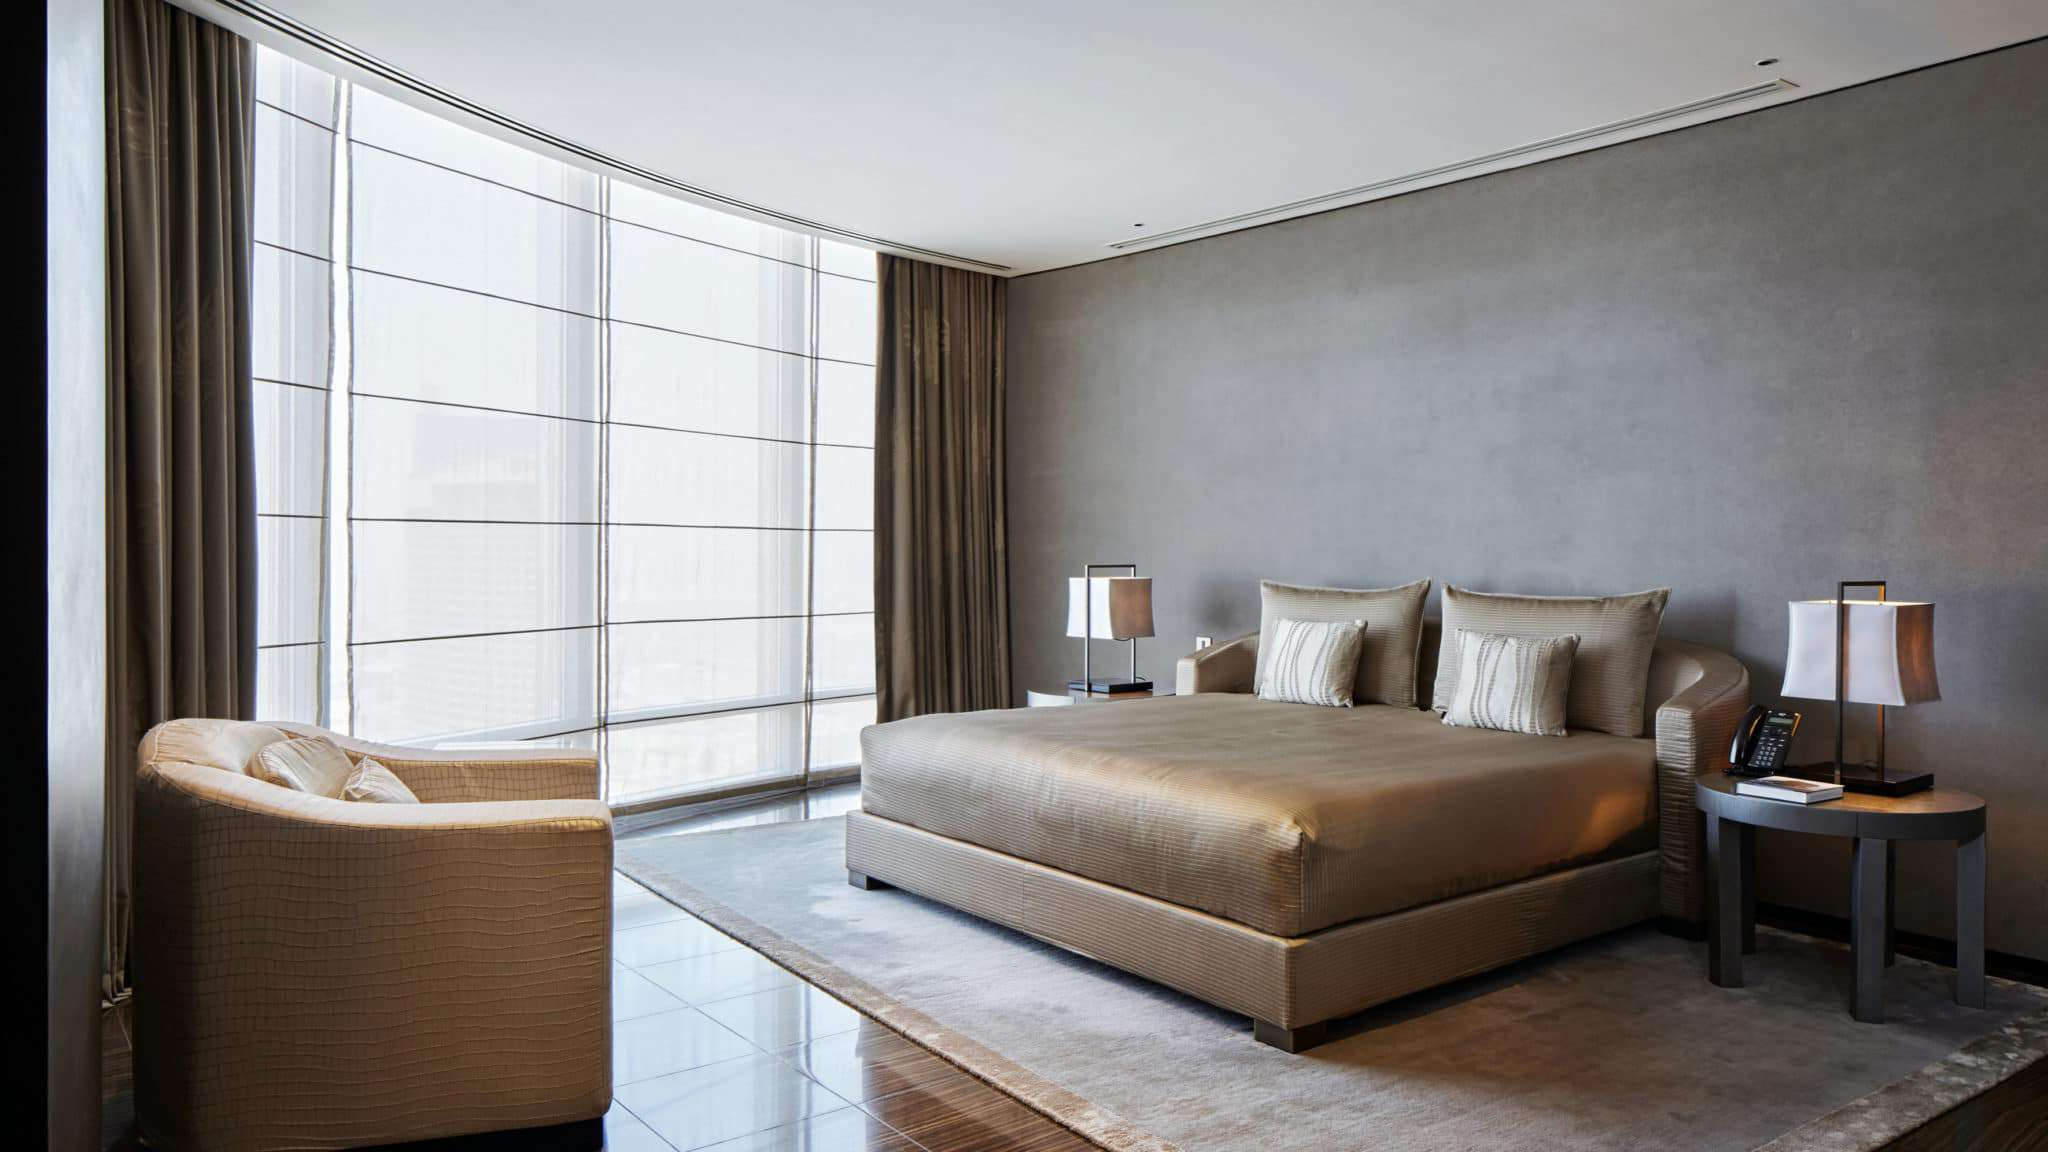 Minimalist gray and gold hotel room with queen size bed, arm chair, and large windows